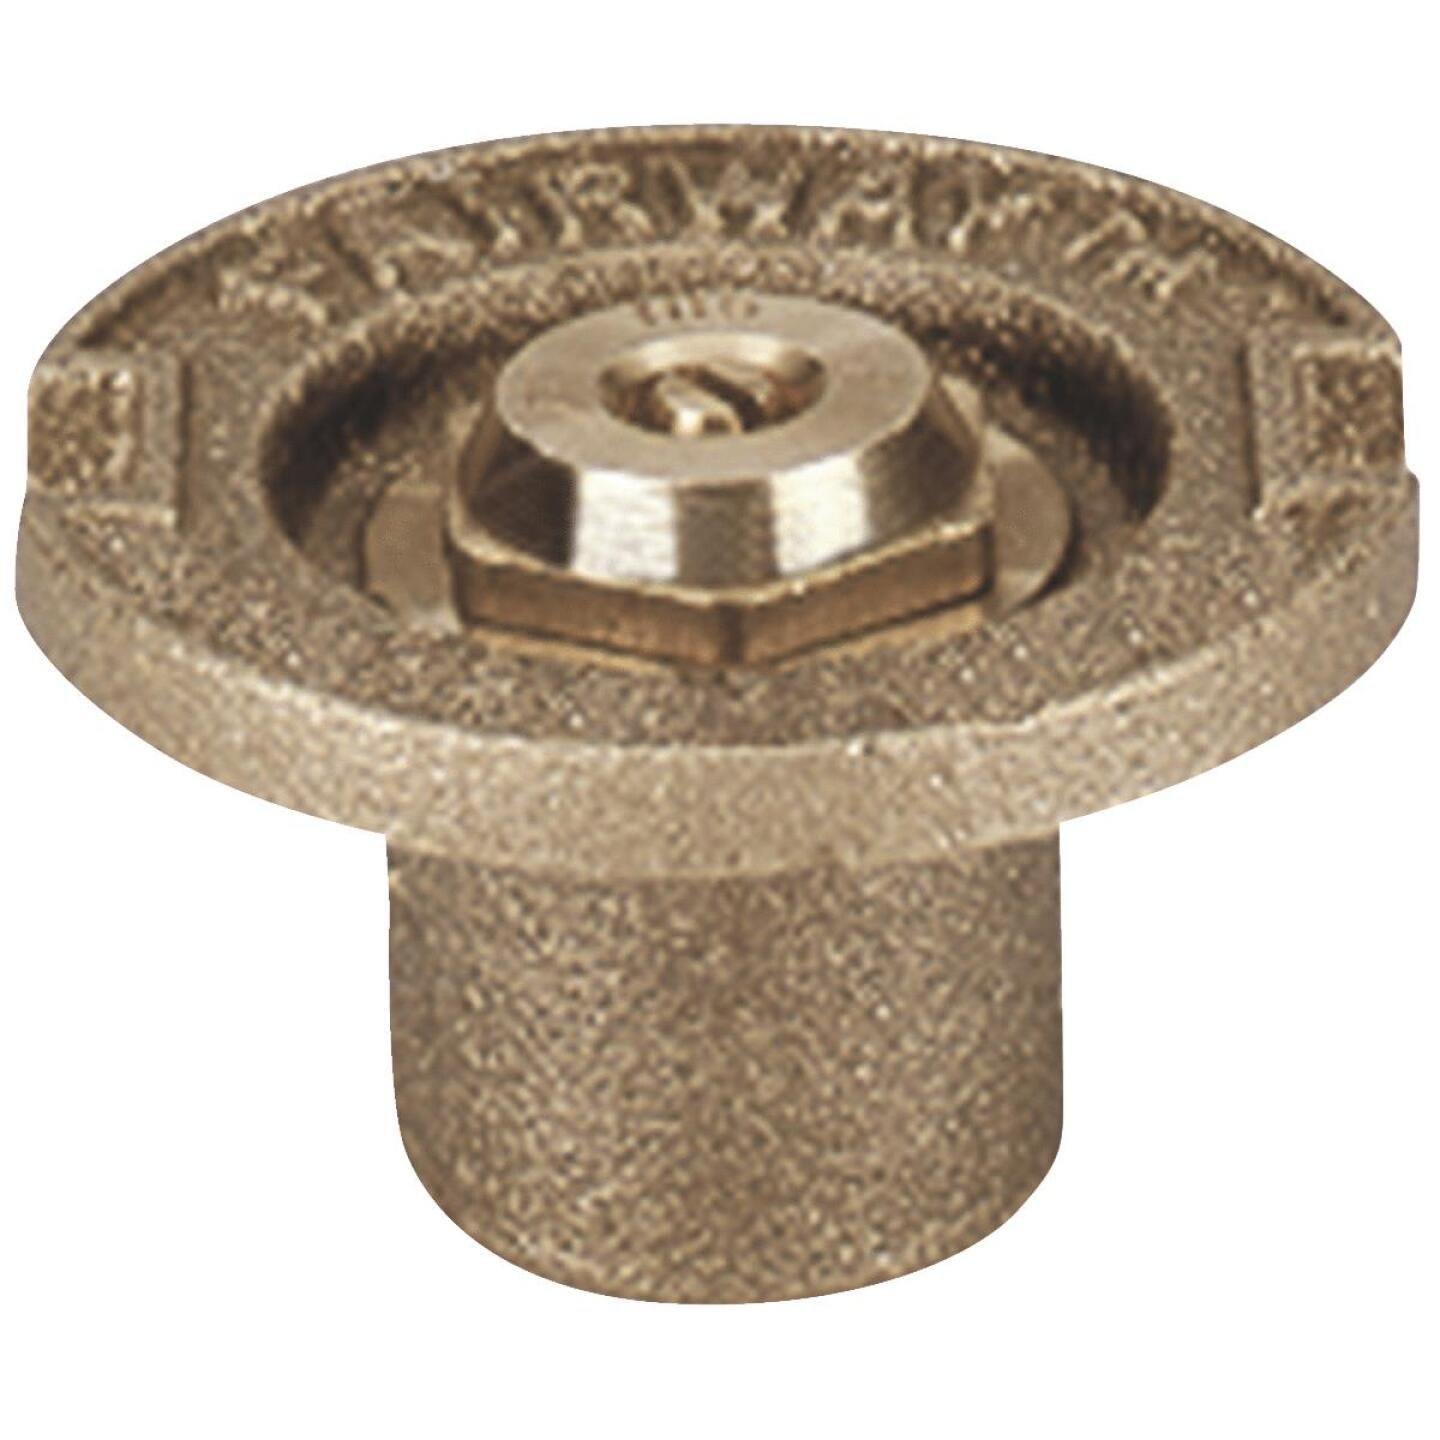 Champion Quarter Circle 1/2 In. FPT Brass Flush Head Sprinkler Image 1